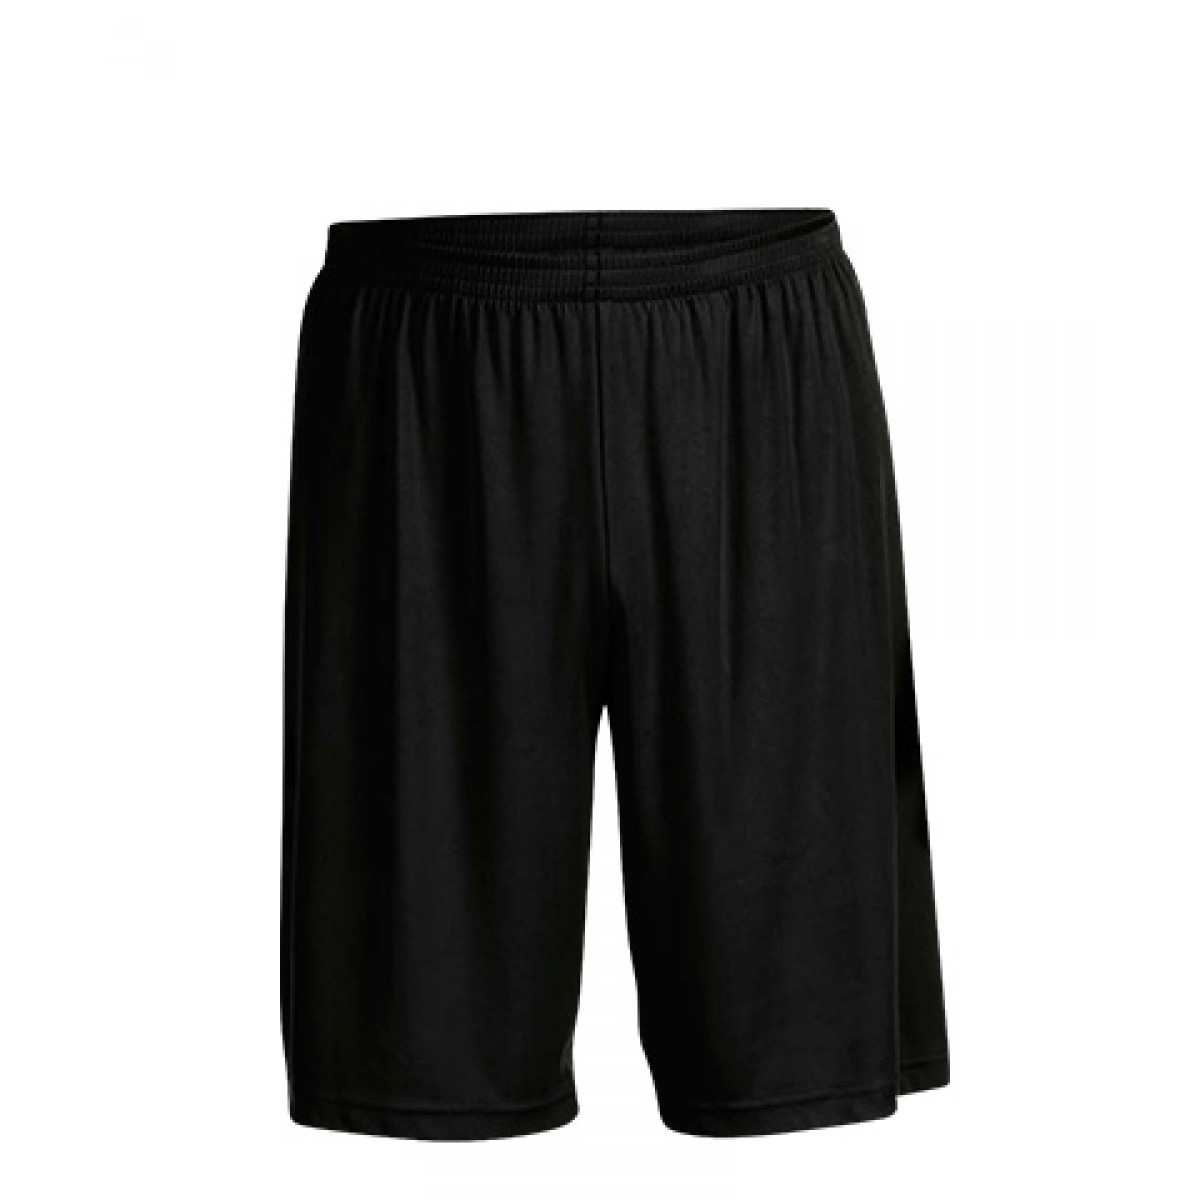 Men's Performance Shorts-Black-M